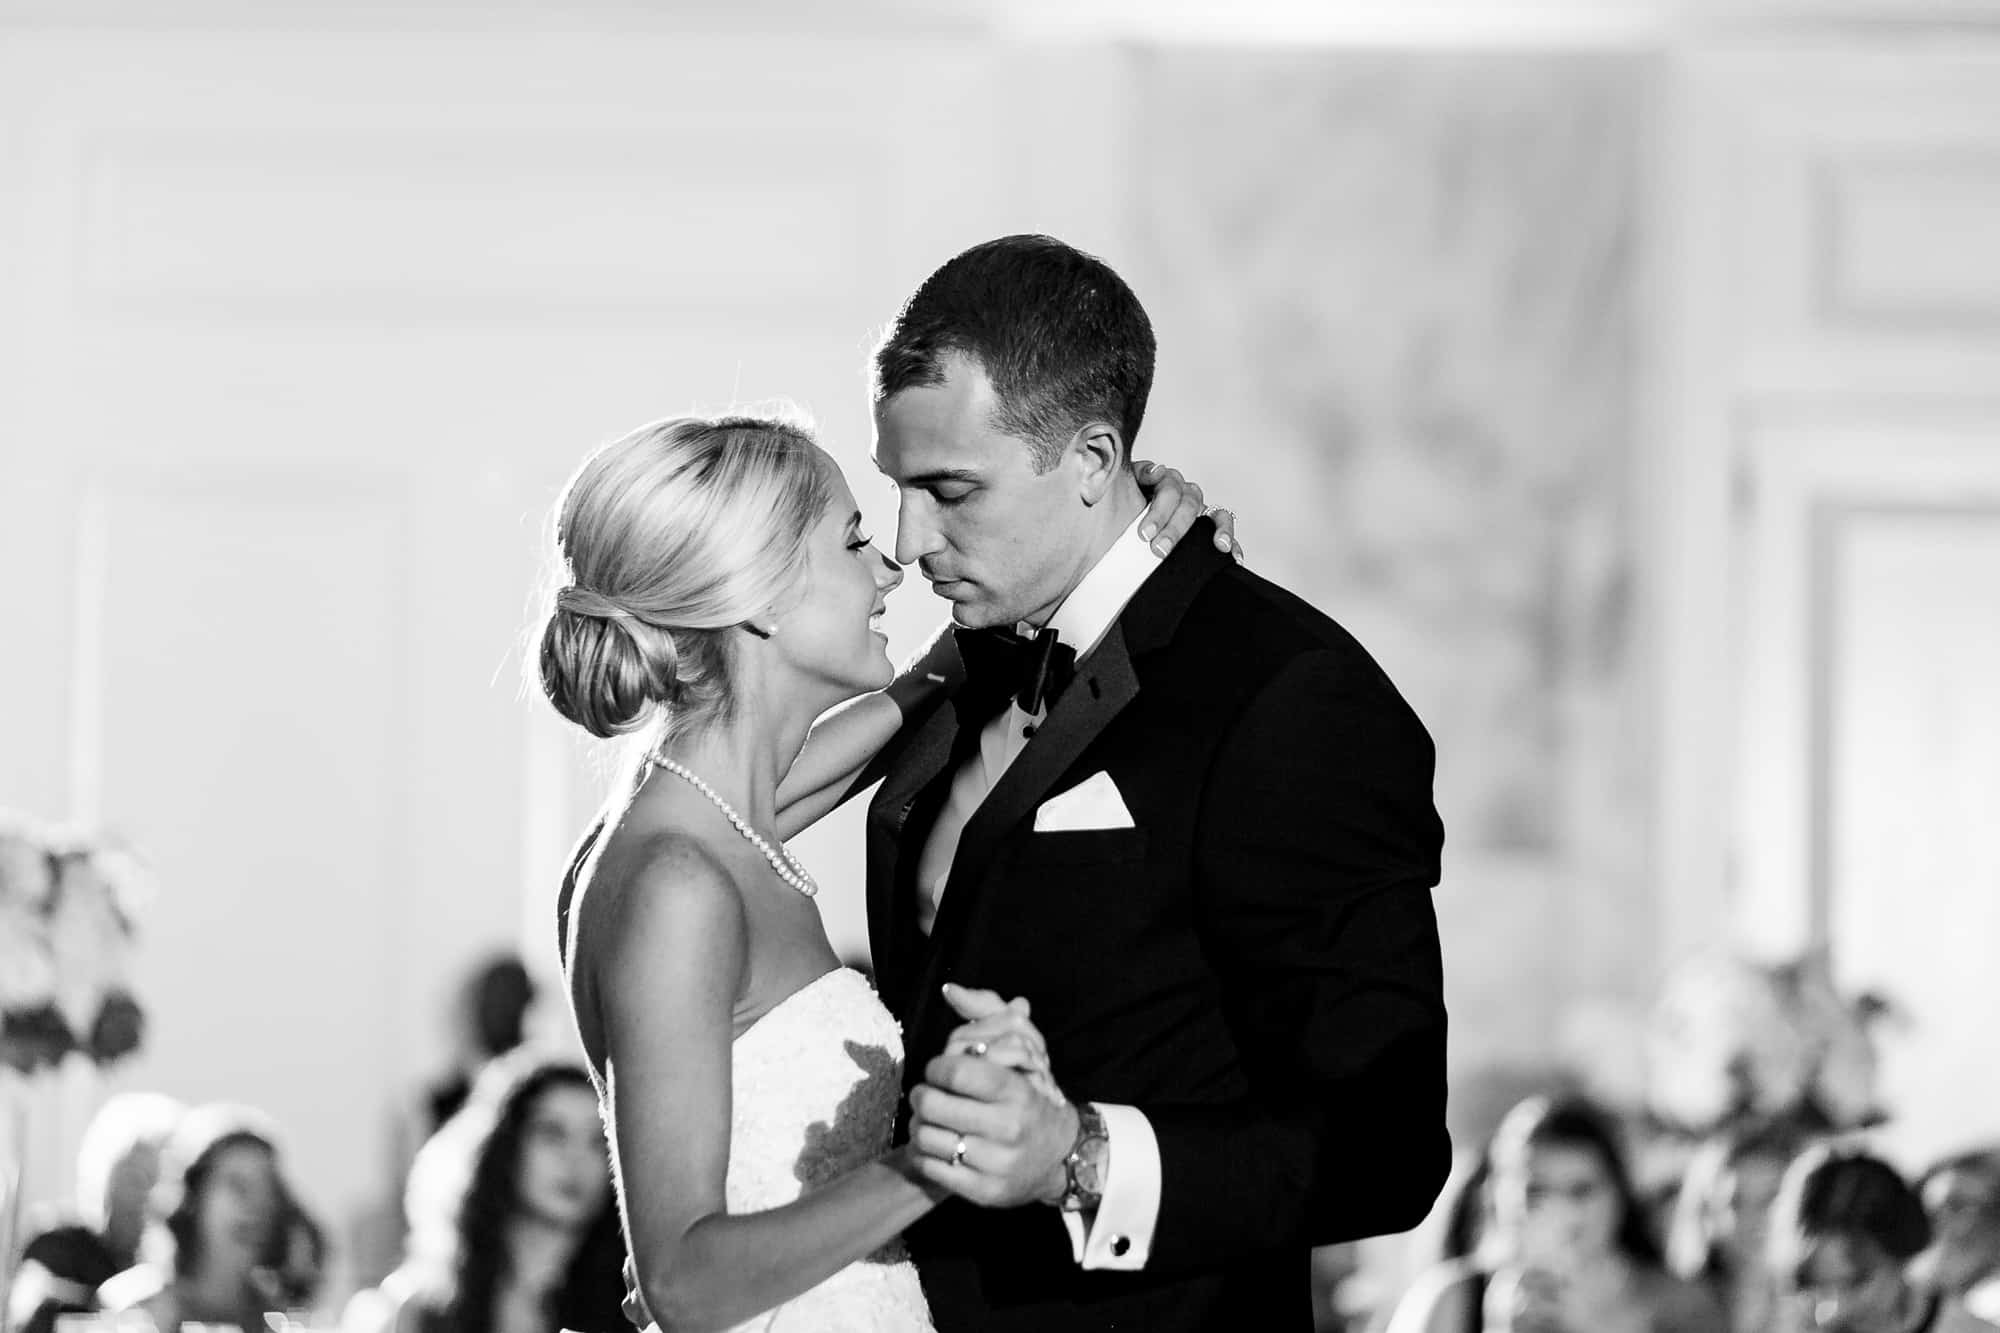 Ritz Carlton Philadelphia Wedding|bride and groom first dance during wedding reception